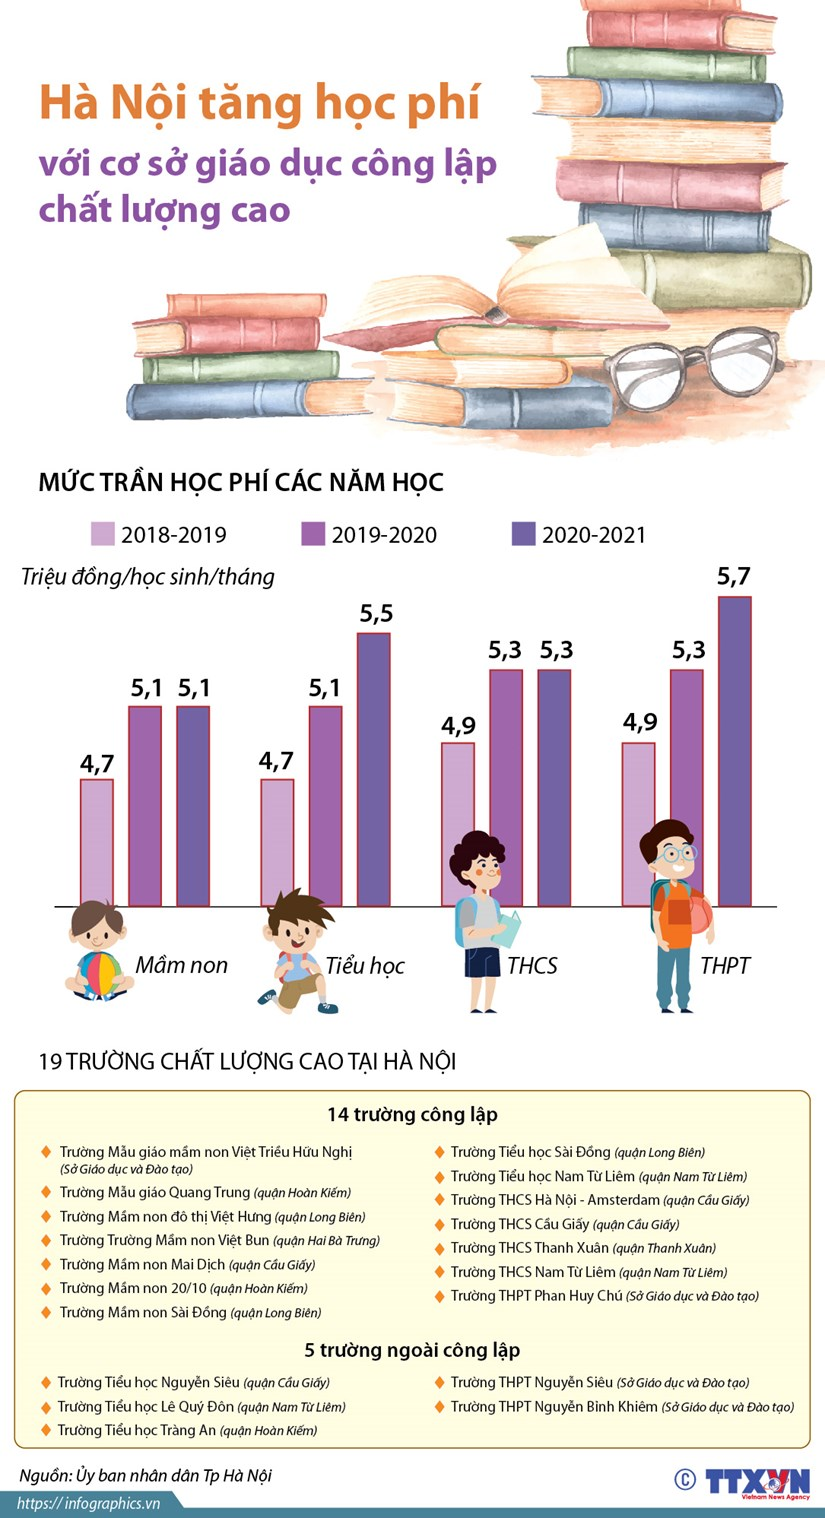 [Infographics] Tang hoc phi voi co so giao duc cong lap chat luong cao hinh anh 1